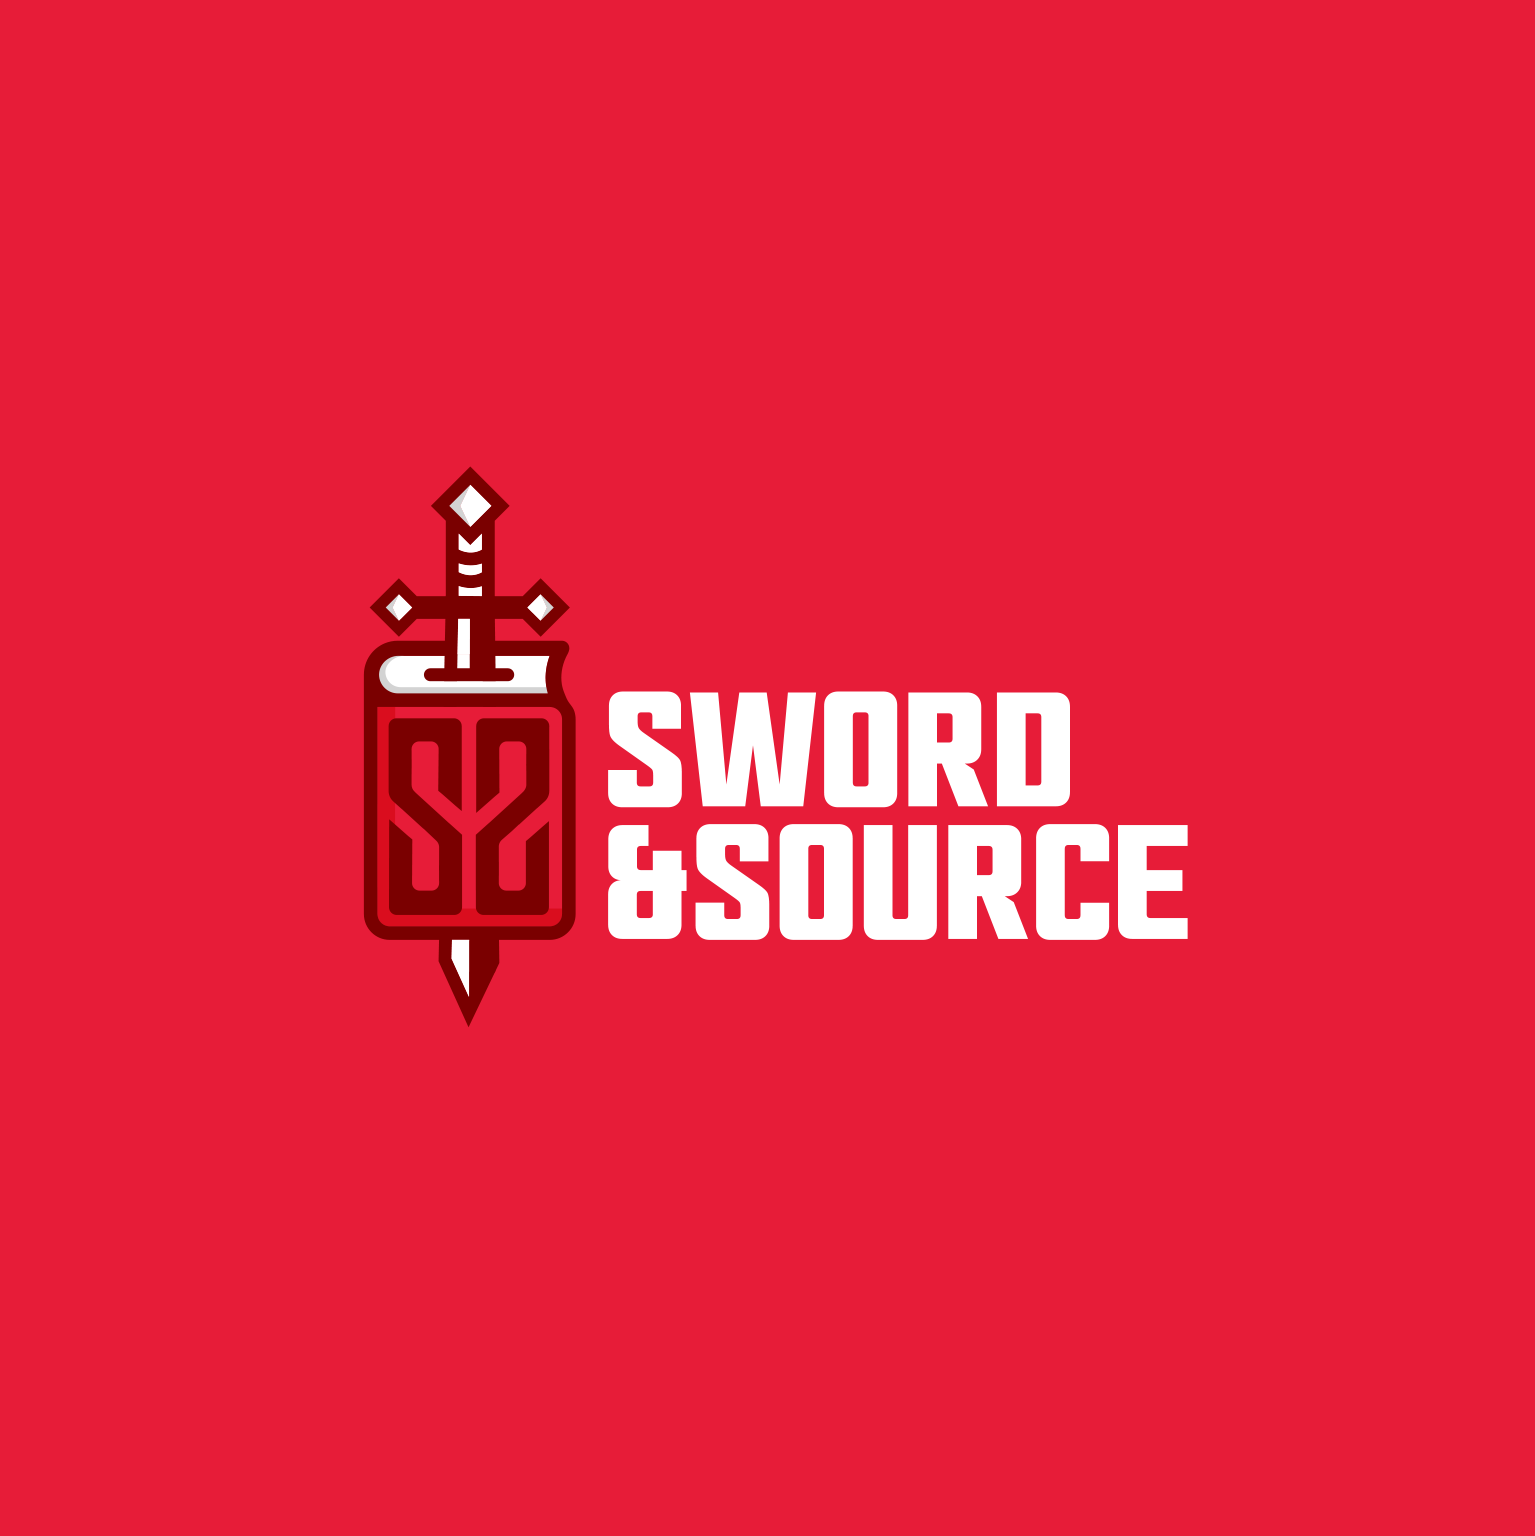 Help kick off a new brand that appeals to tabletop gamers